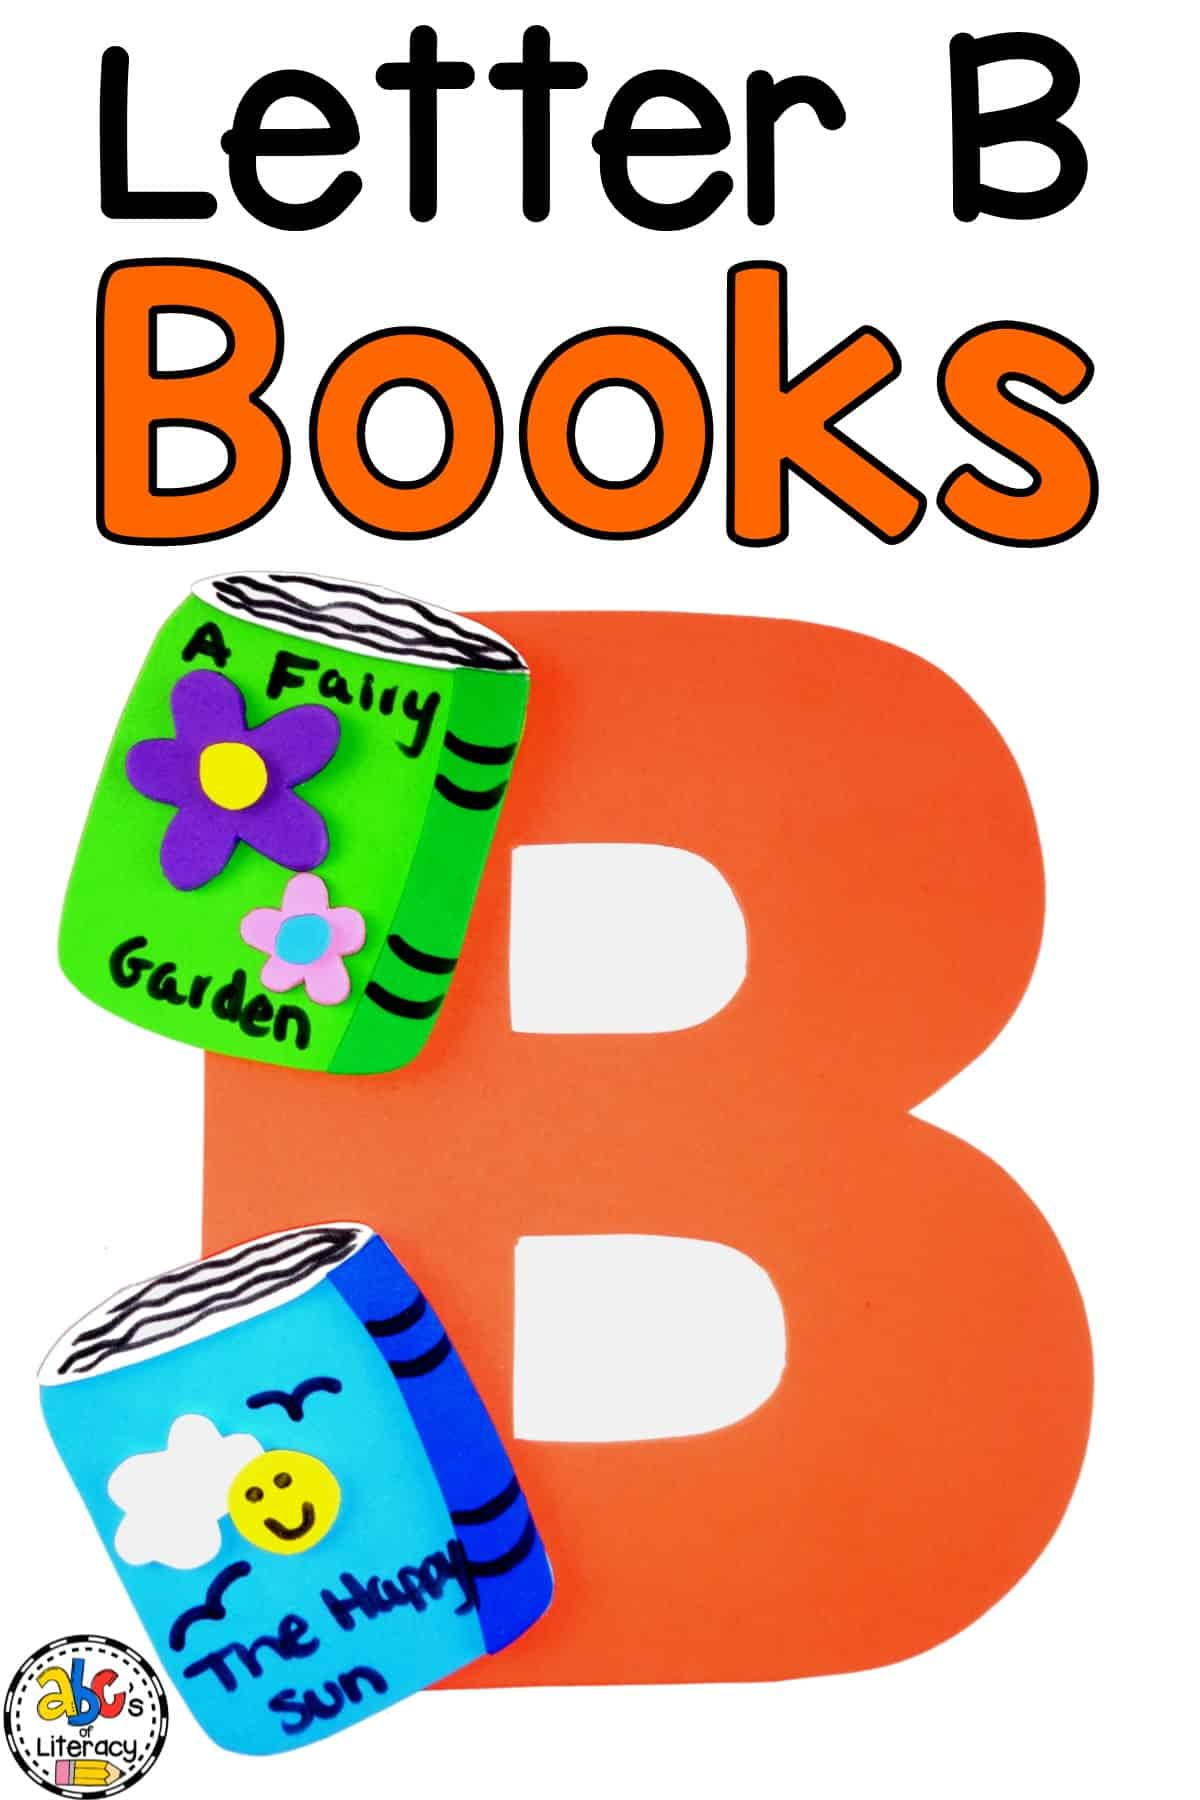 Letter B Craft, Books Craft, Letter of the Week, Letter of the Week Craft, Letter B Books Craft